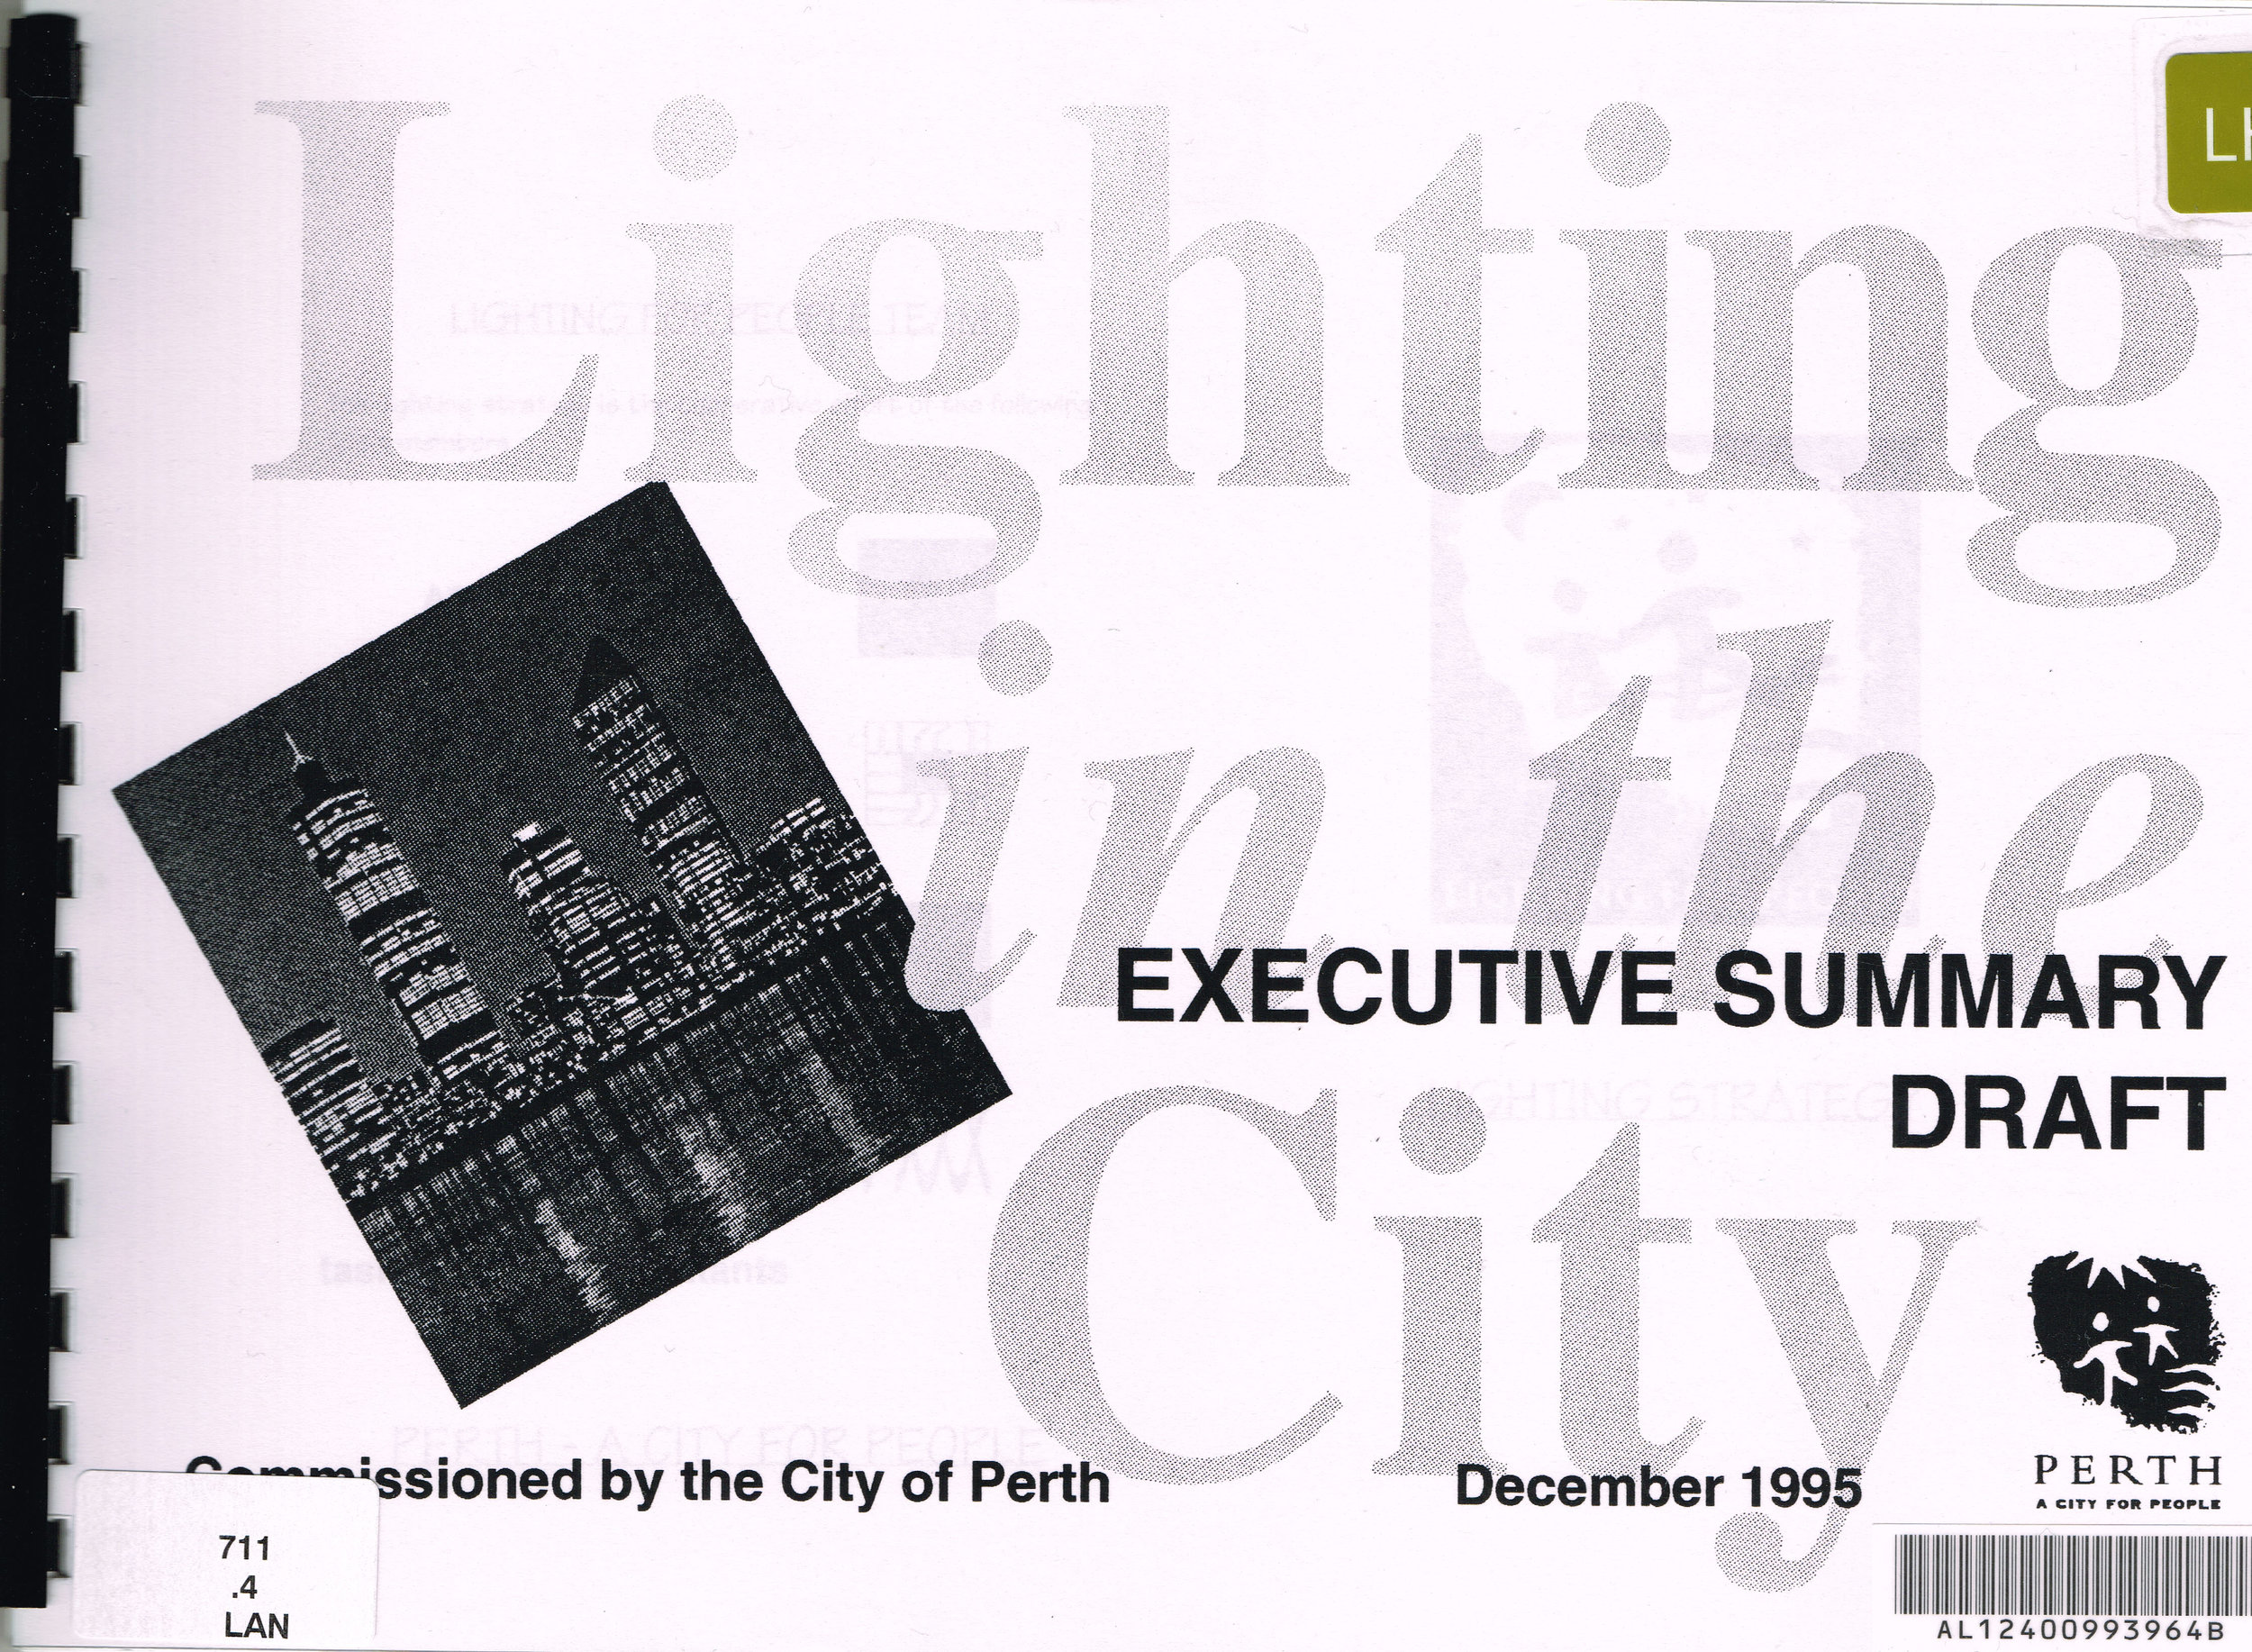 Lighting in the City : Executive Summary Draft, December 1995   Nelson, Mardardy & Associates Pty Ltd consulting engineers - electrical, lighting commissioned by the City of Perth